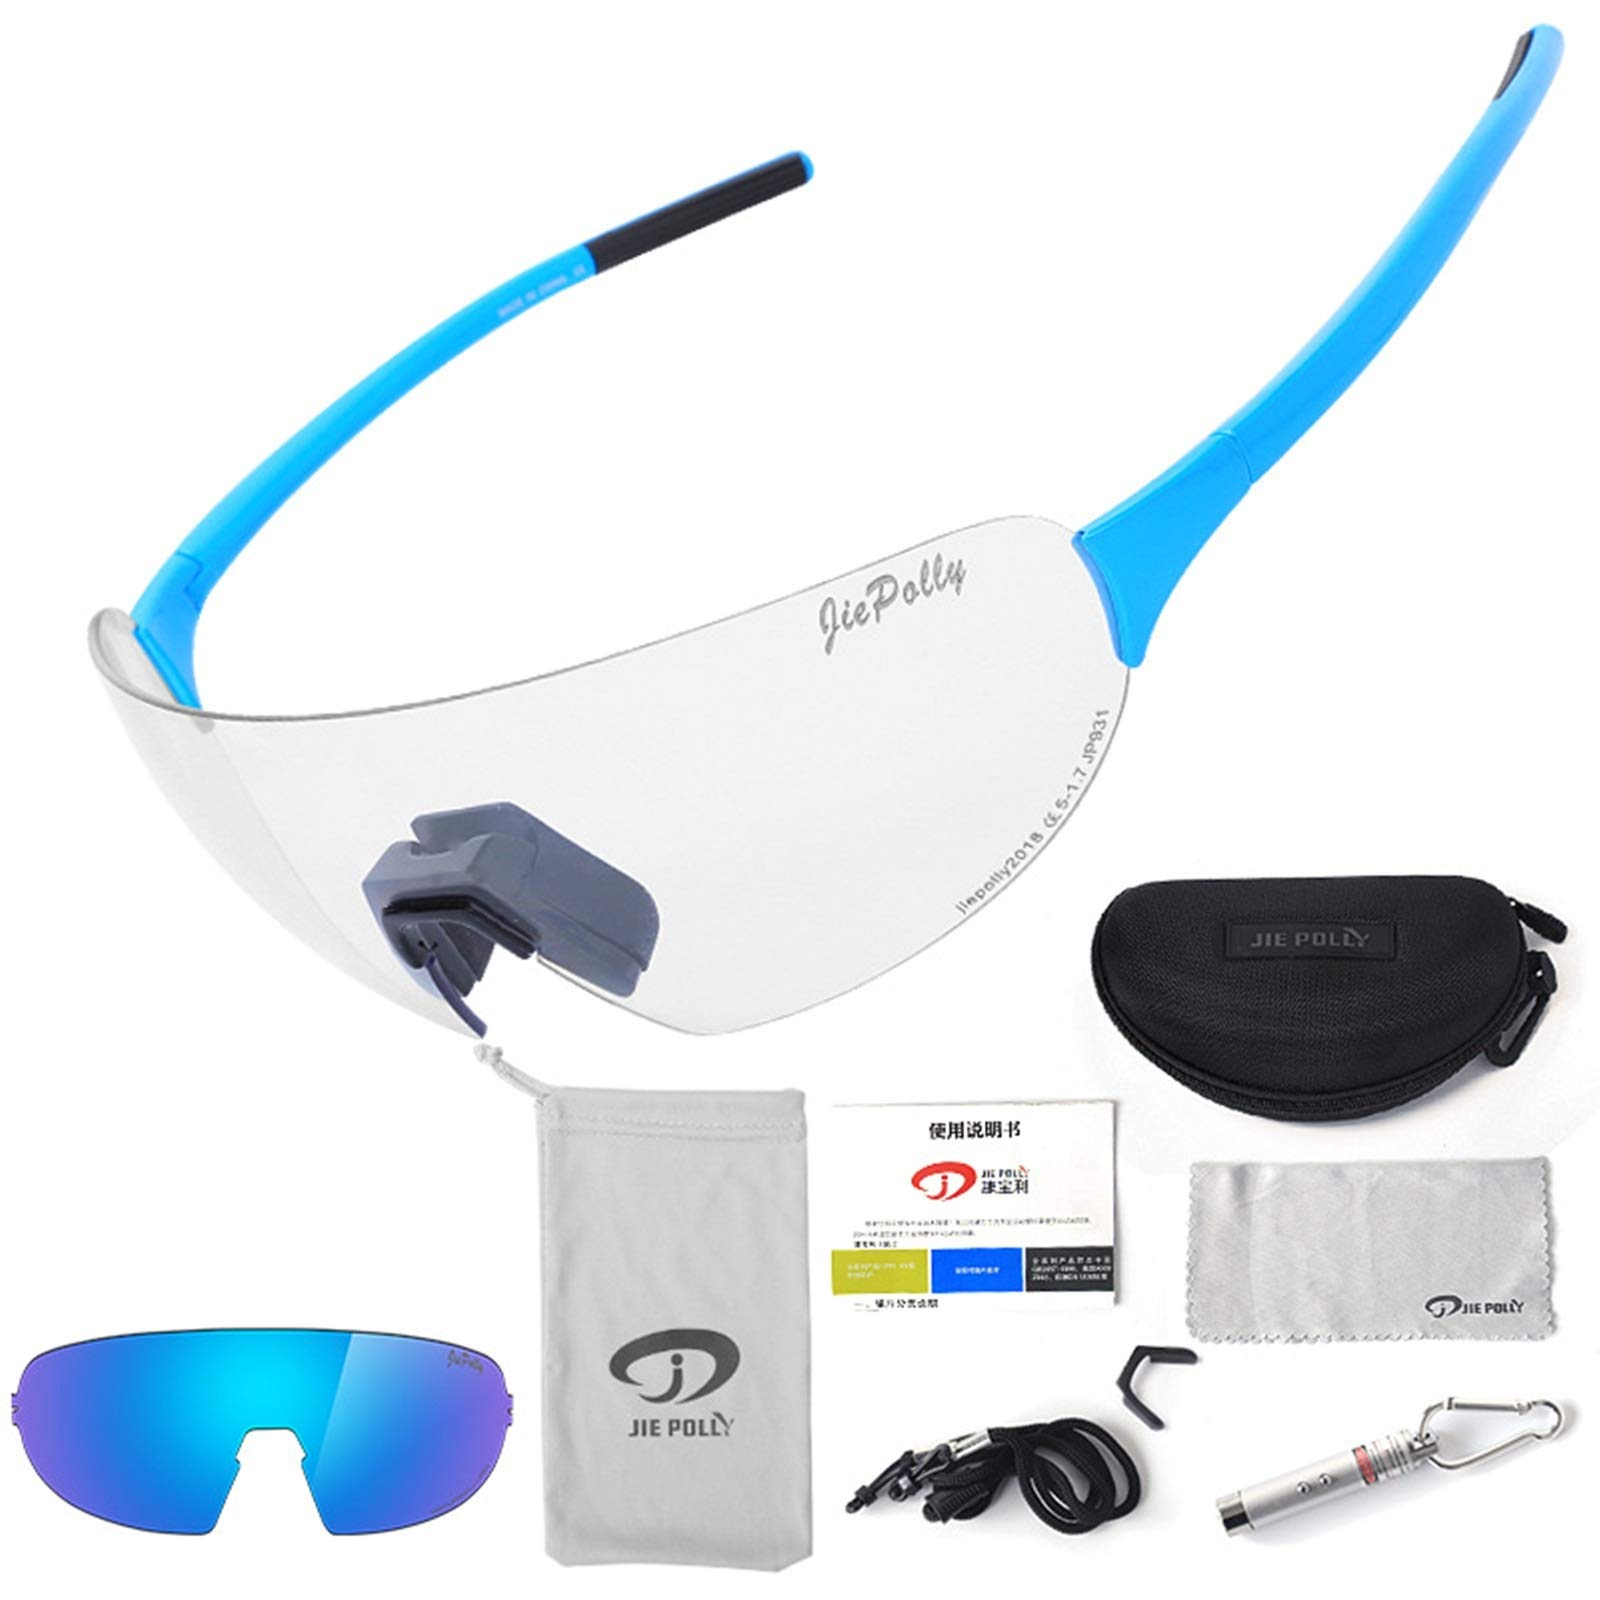 Adisaer Outdoor Bicycle Goggles Outdoor Sports Riding Color-Changing Glasses Men and Women Running Fishing Bicycle Windproof Polarized Glasses Blue Upgrade 2 for Adults